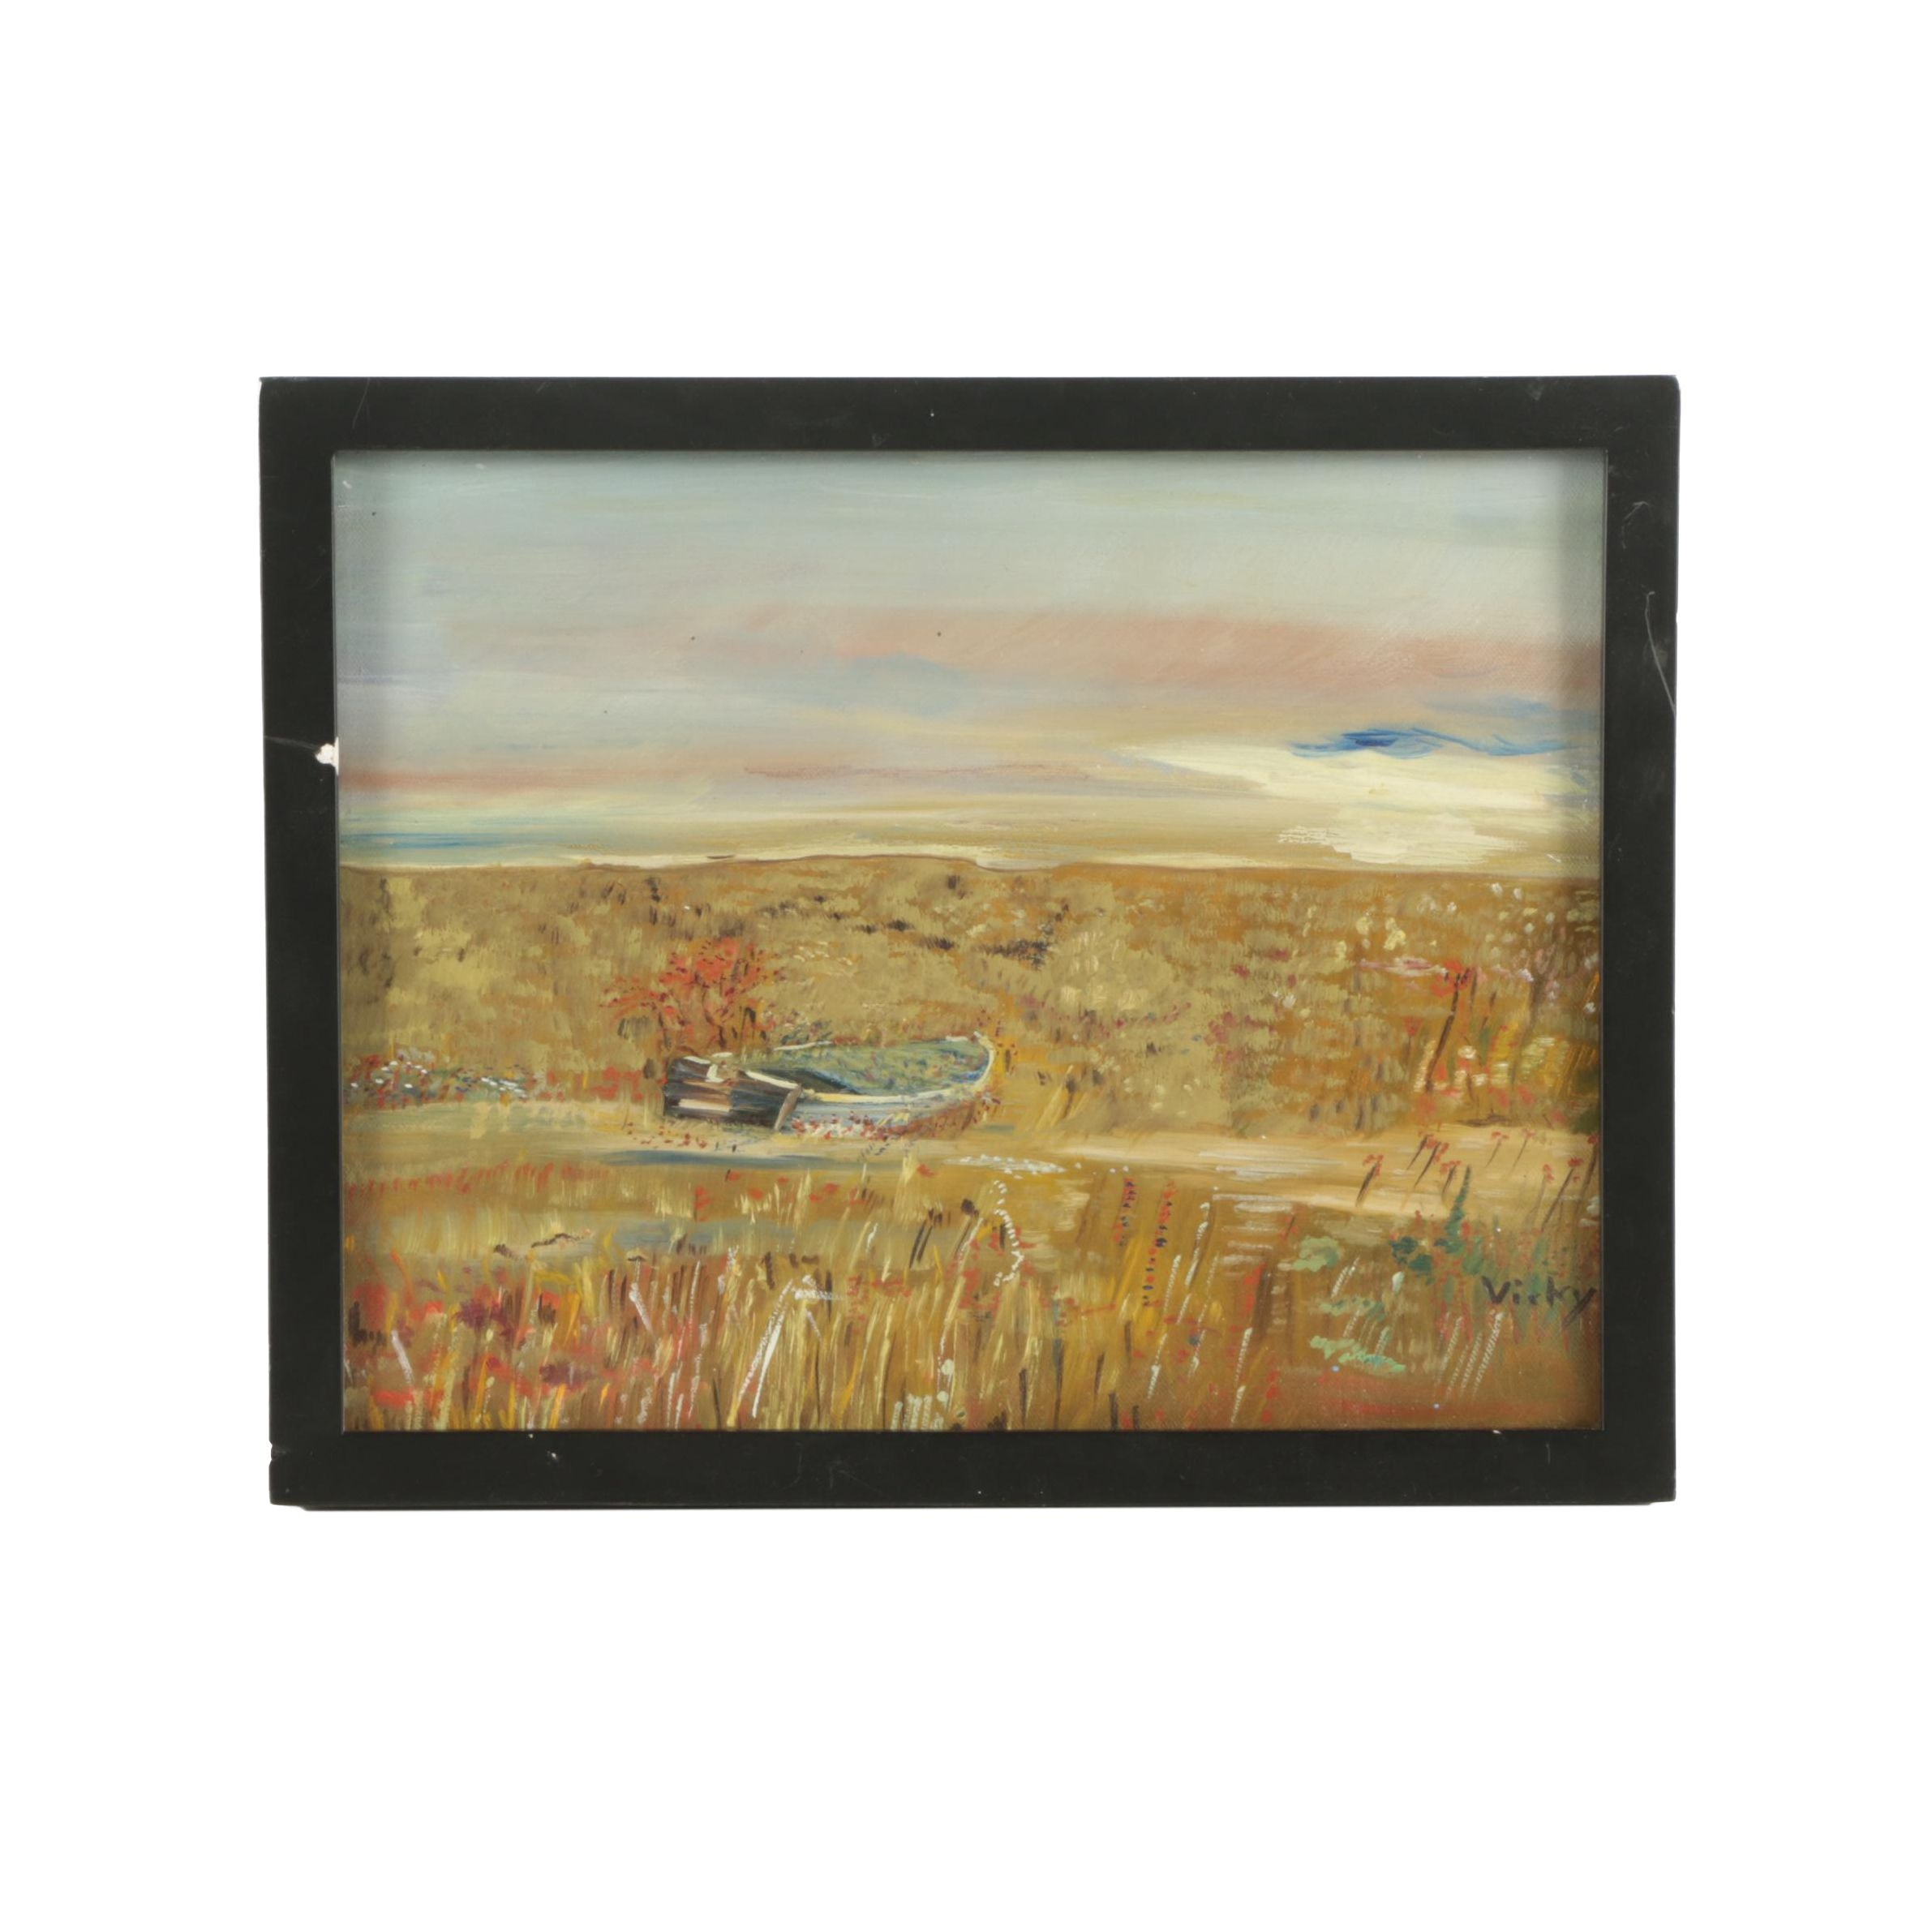 Vicky Oil Painting of Boat in a Field